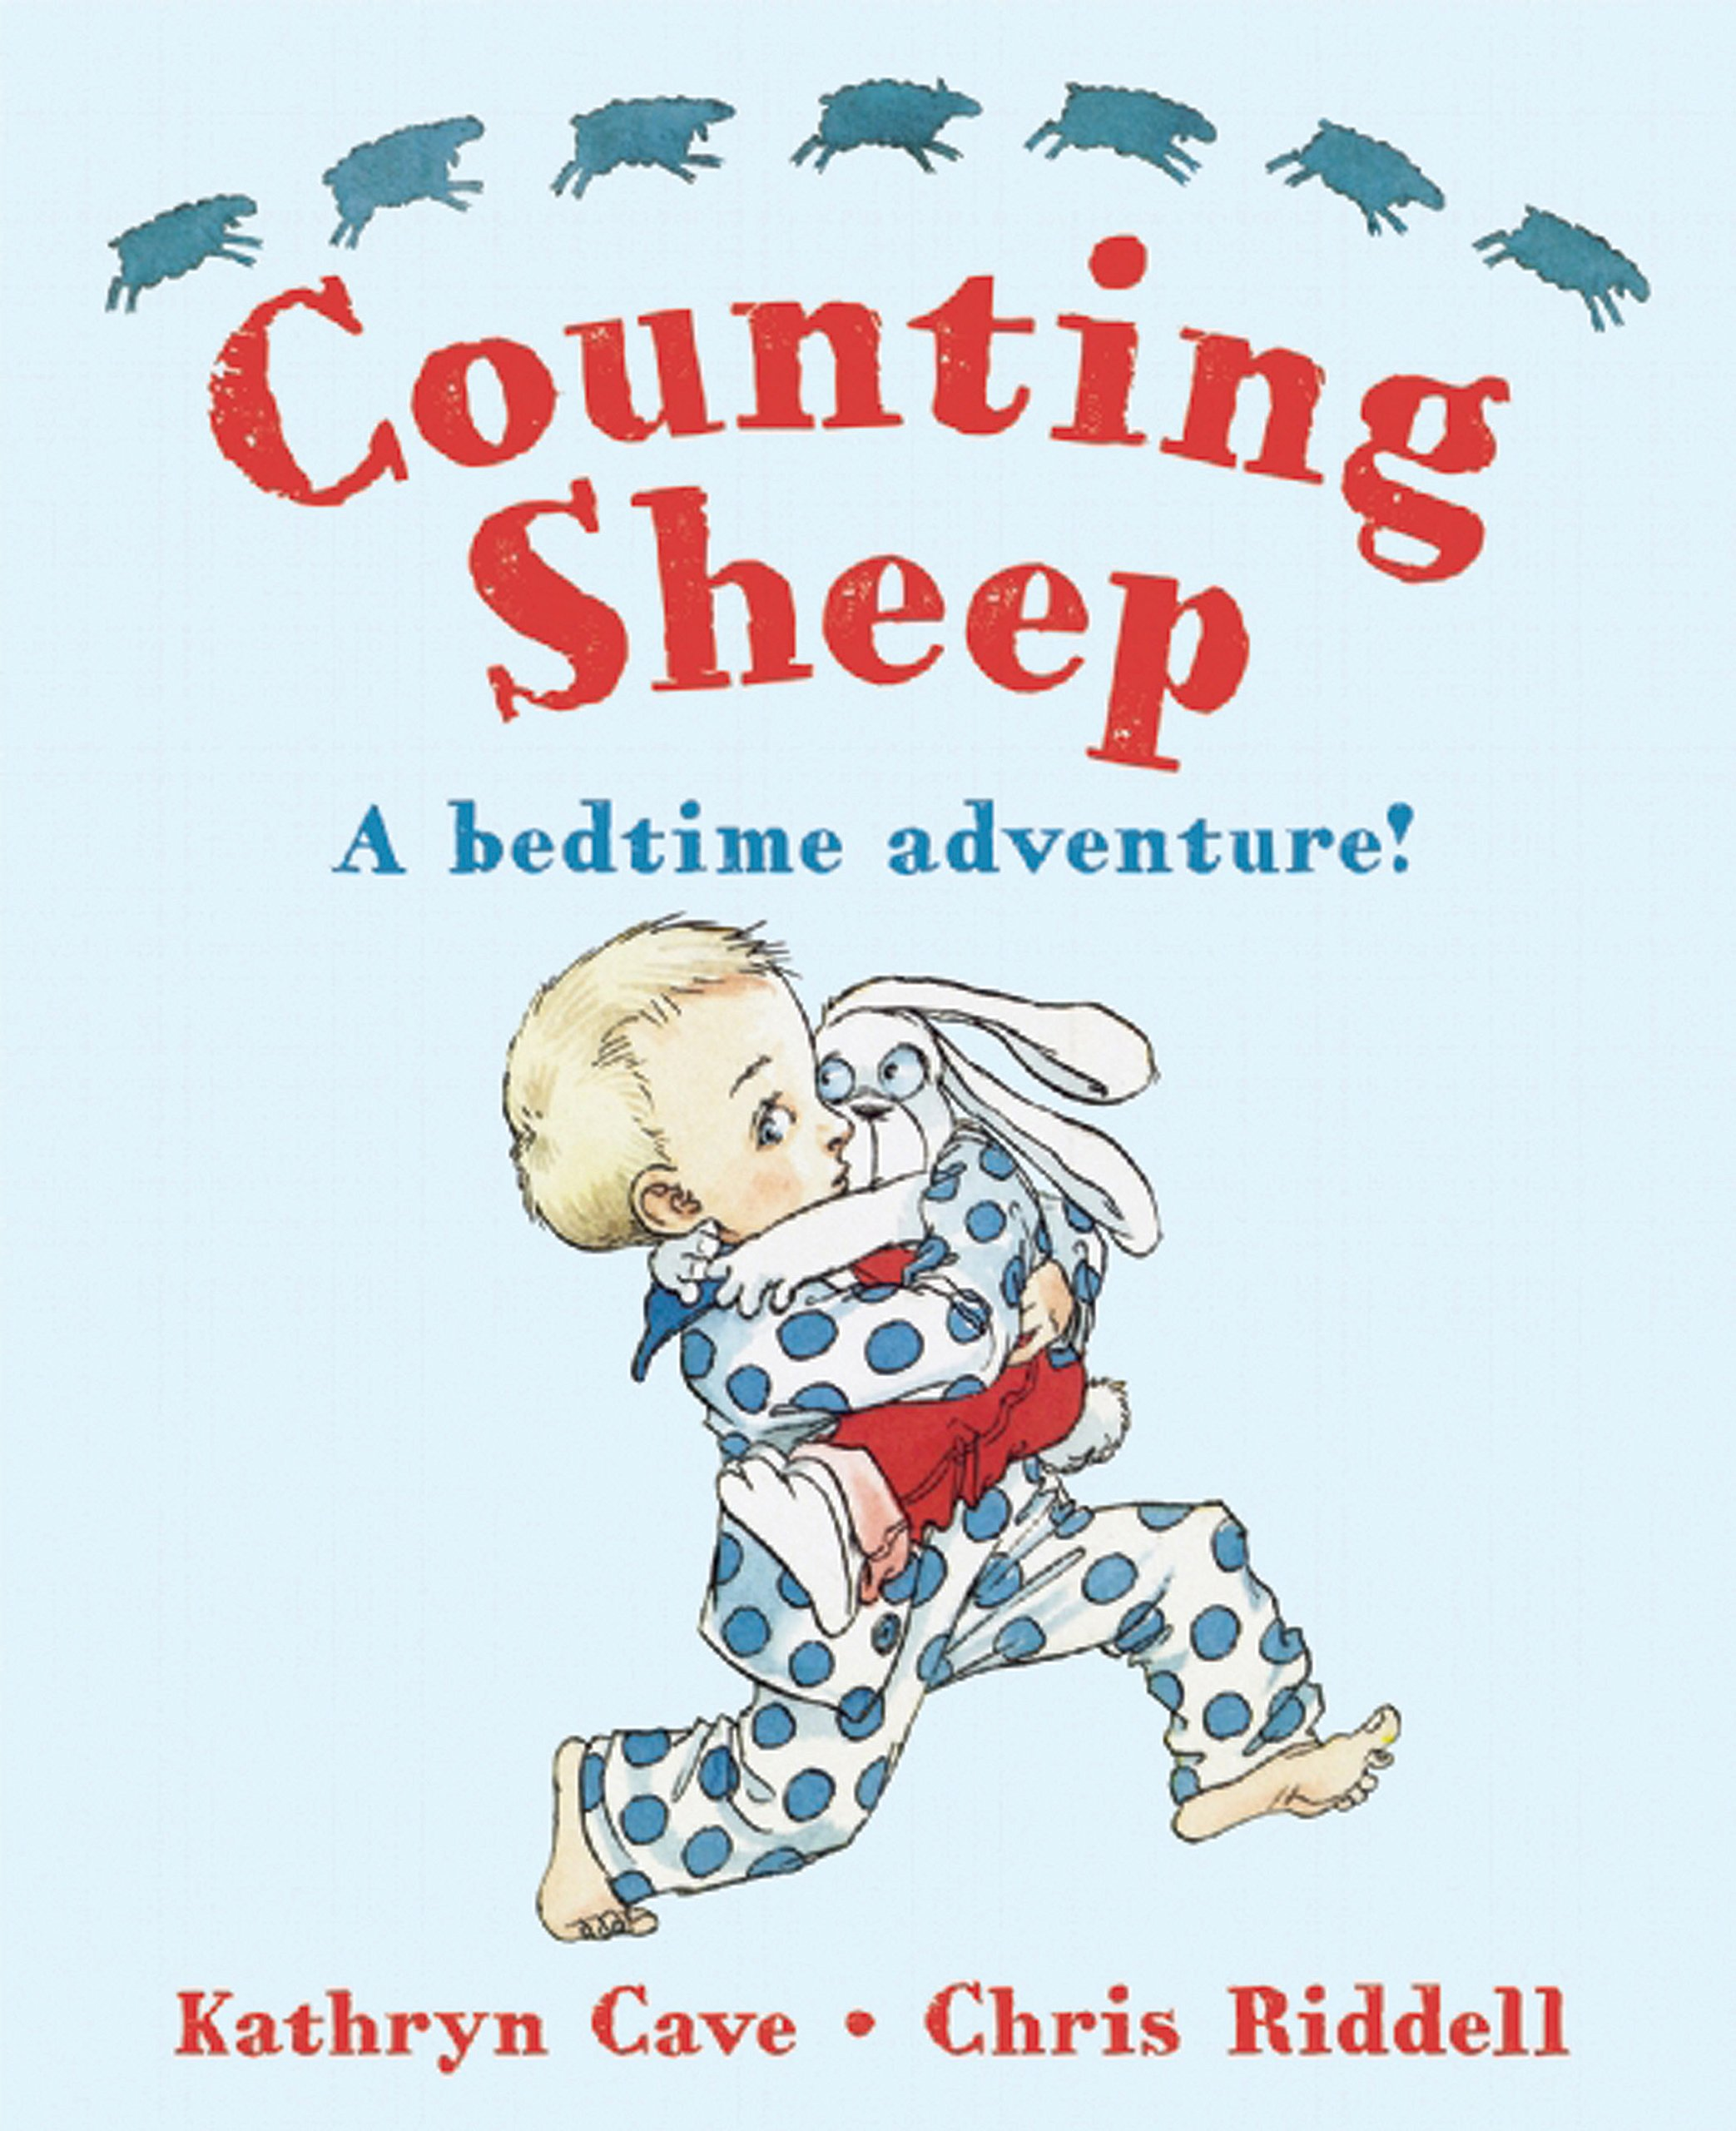 Counting Sheep: A Bedtime Adventure!: Kathryn Cave, Chris Riddell:  9781847804808: Amazon.com: Books